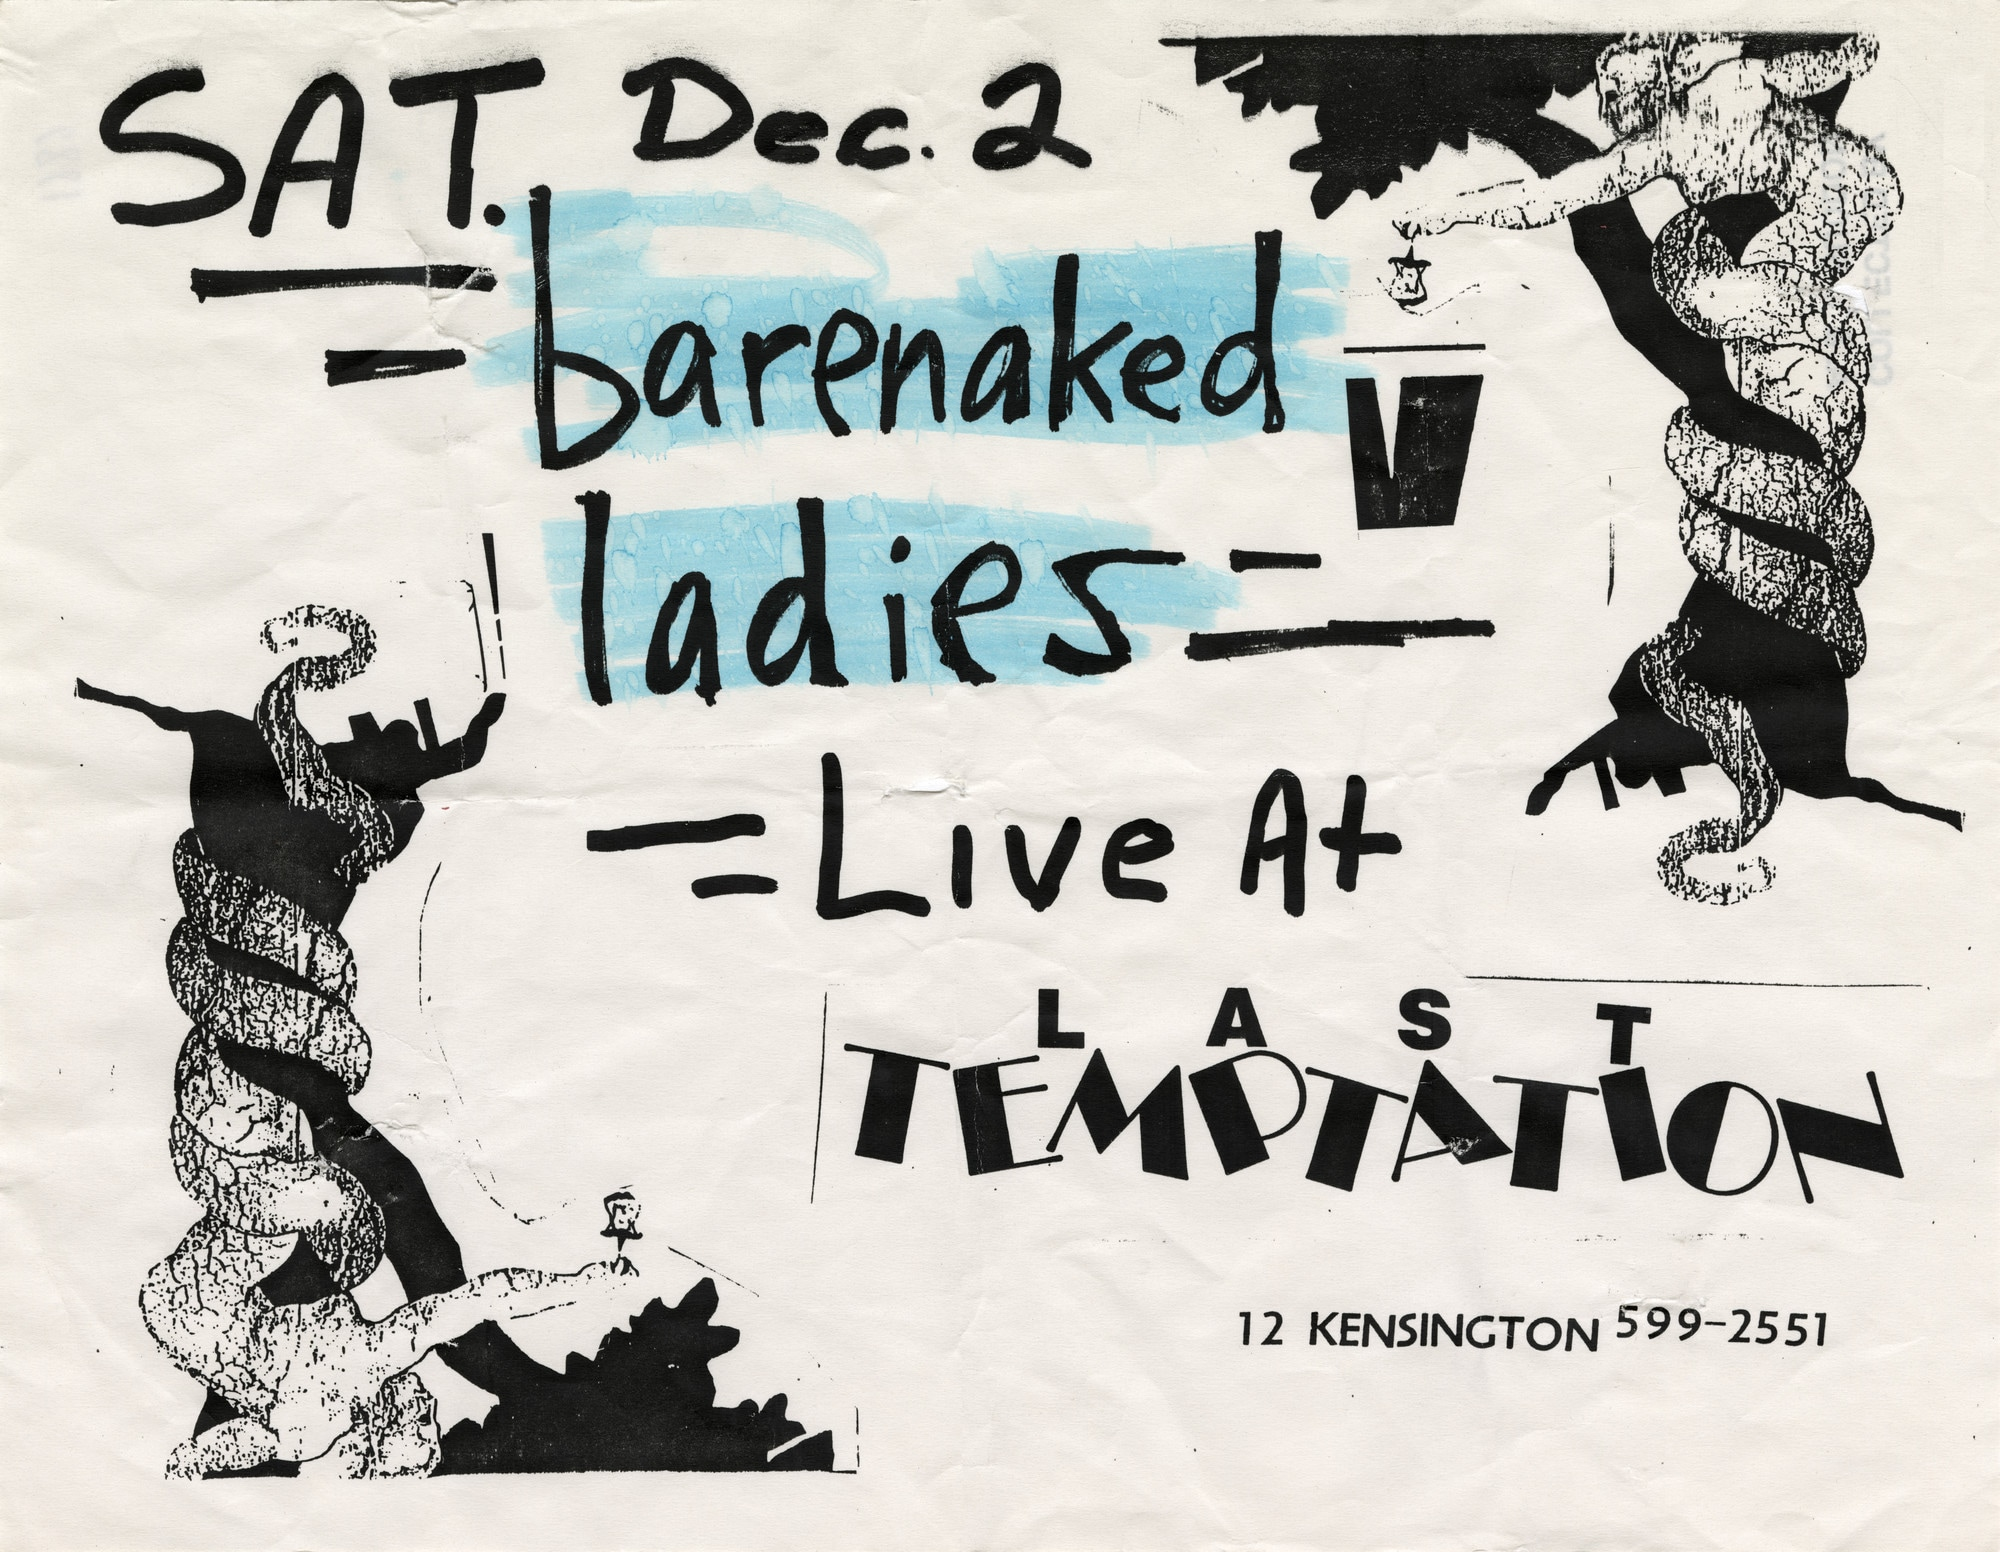 """A black and white poster with the words """"Sat. Dec. 2 Barenaked Ladies Live at Last Temptation, 12 Kensington"""". The words """"Barenaked Ladies"""" are highlighted in blue."""